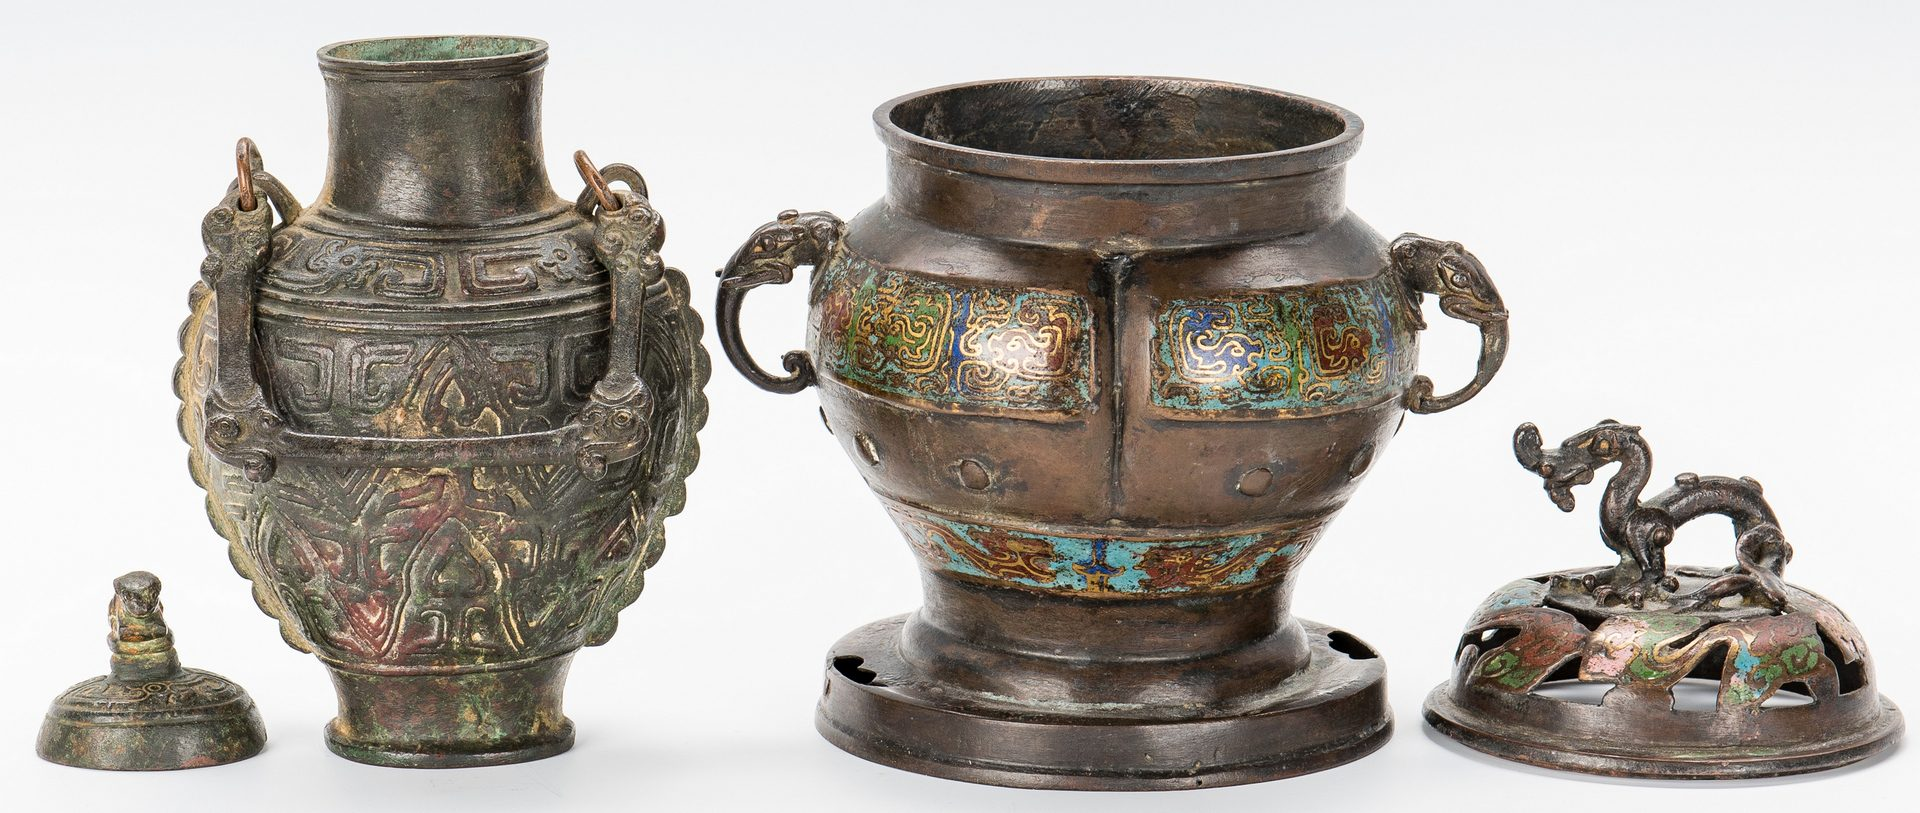 Lot 308: 3 Chinese Bronze Decorative Items